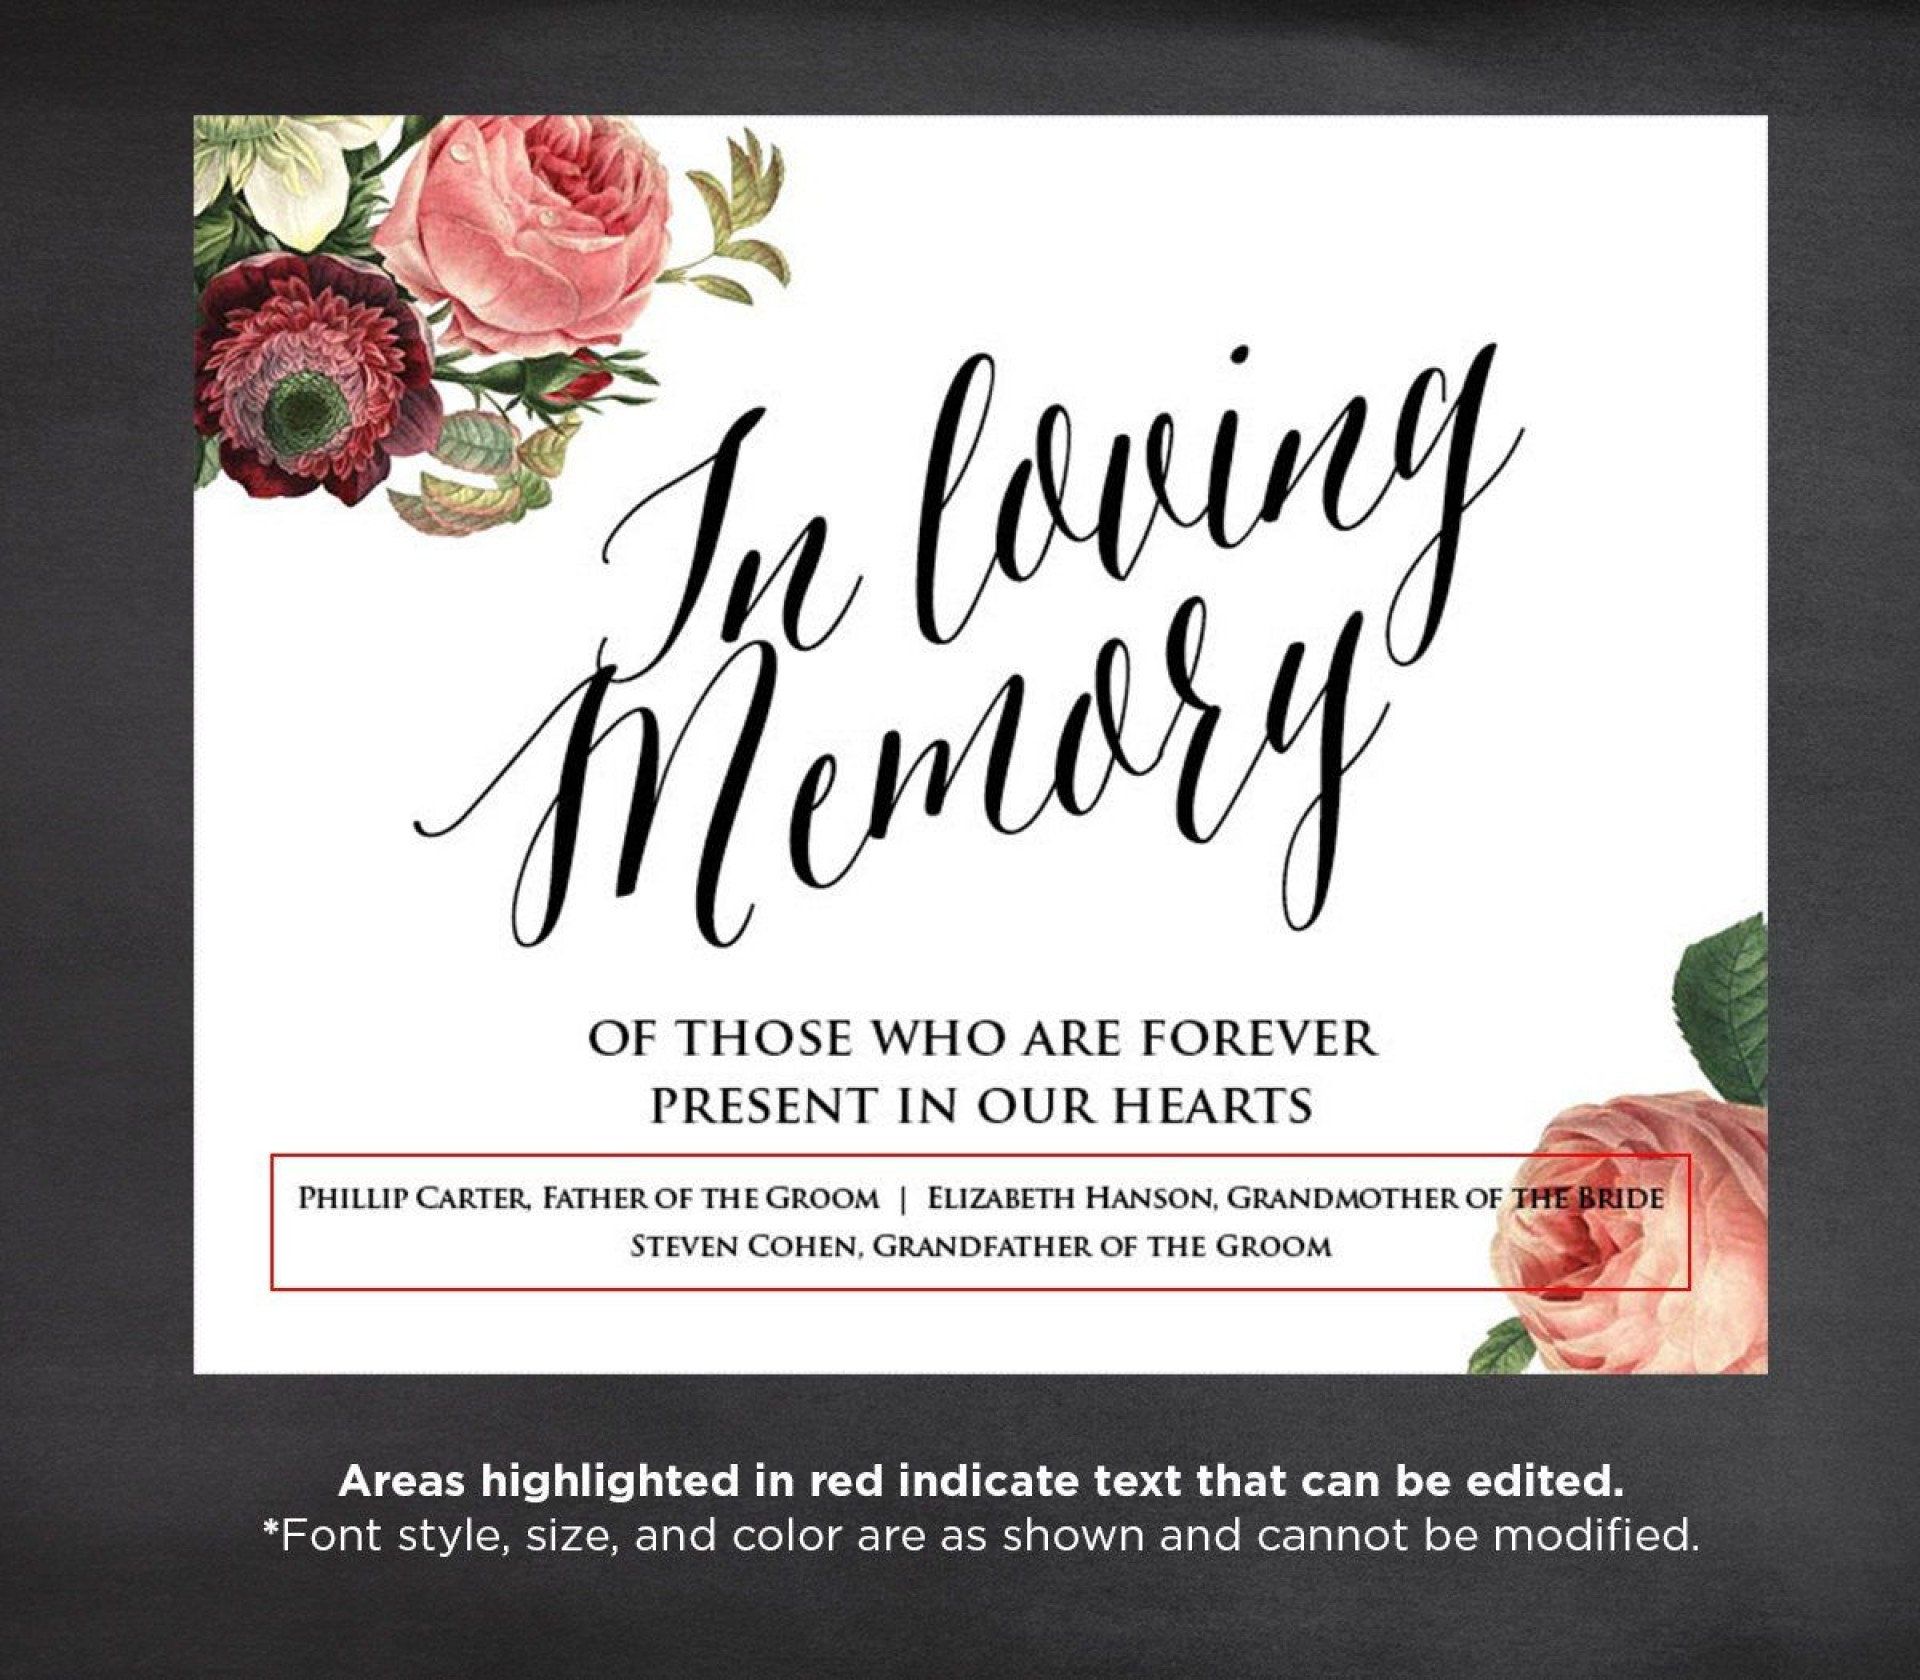 005 Unbelievable In Loving Memory Template Design  Templates Word1920